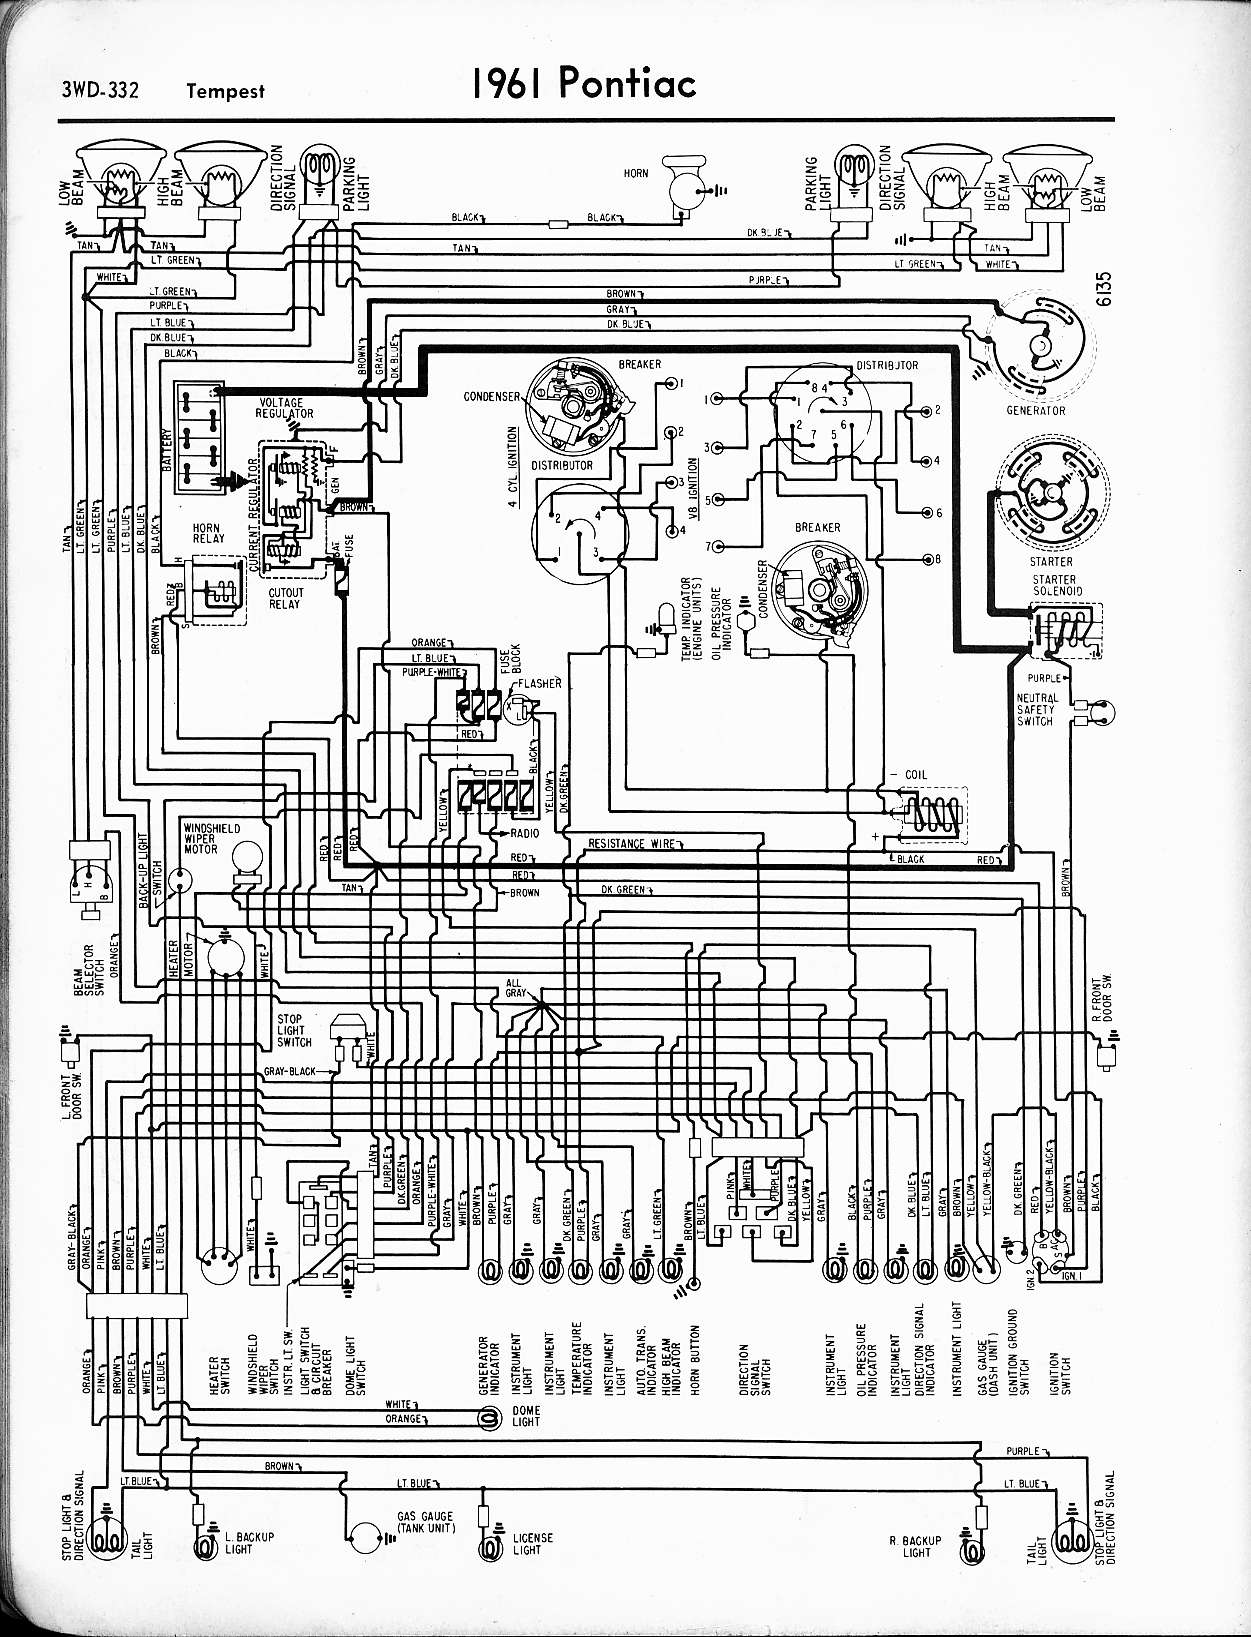 MWire5765 332 wallace racing wiring diagrams pontiac wiring diagrams at virtualis.co